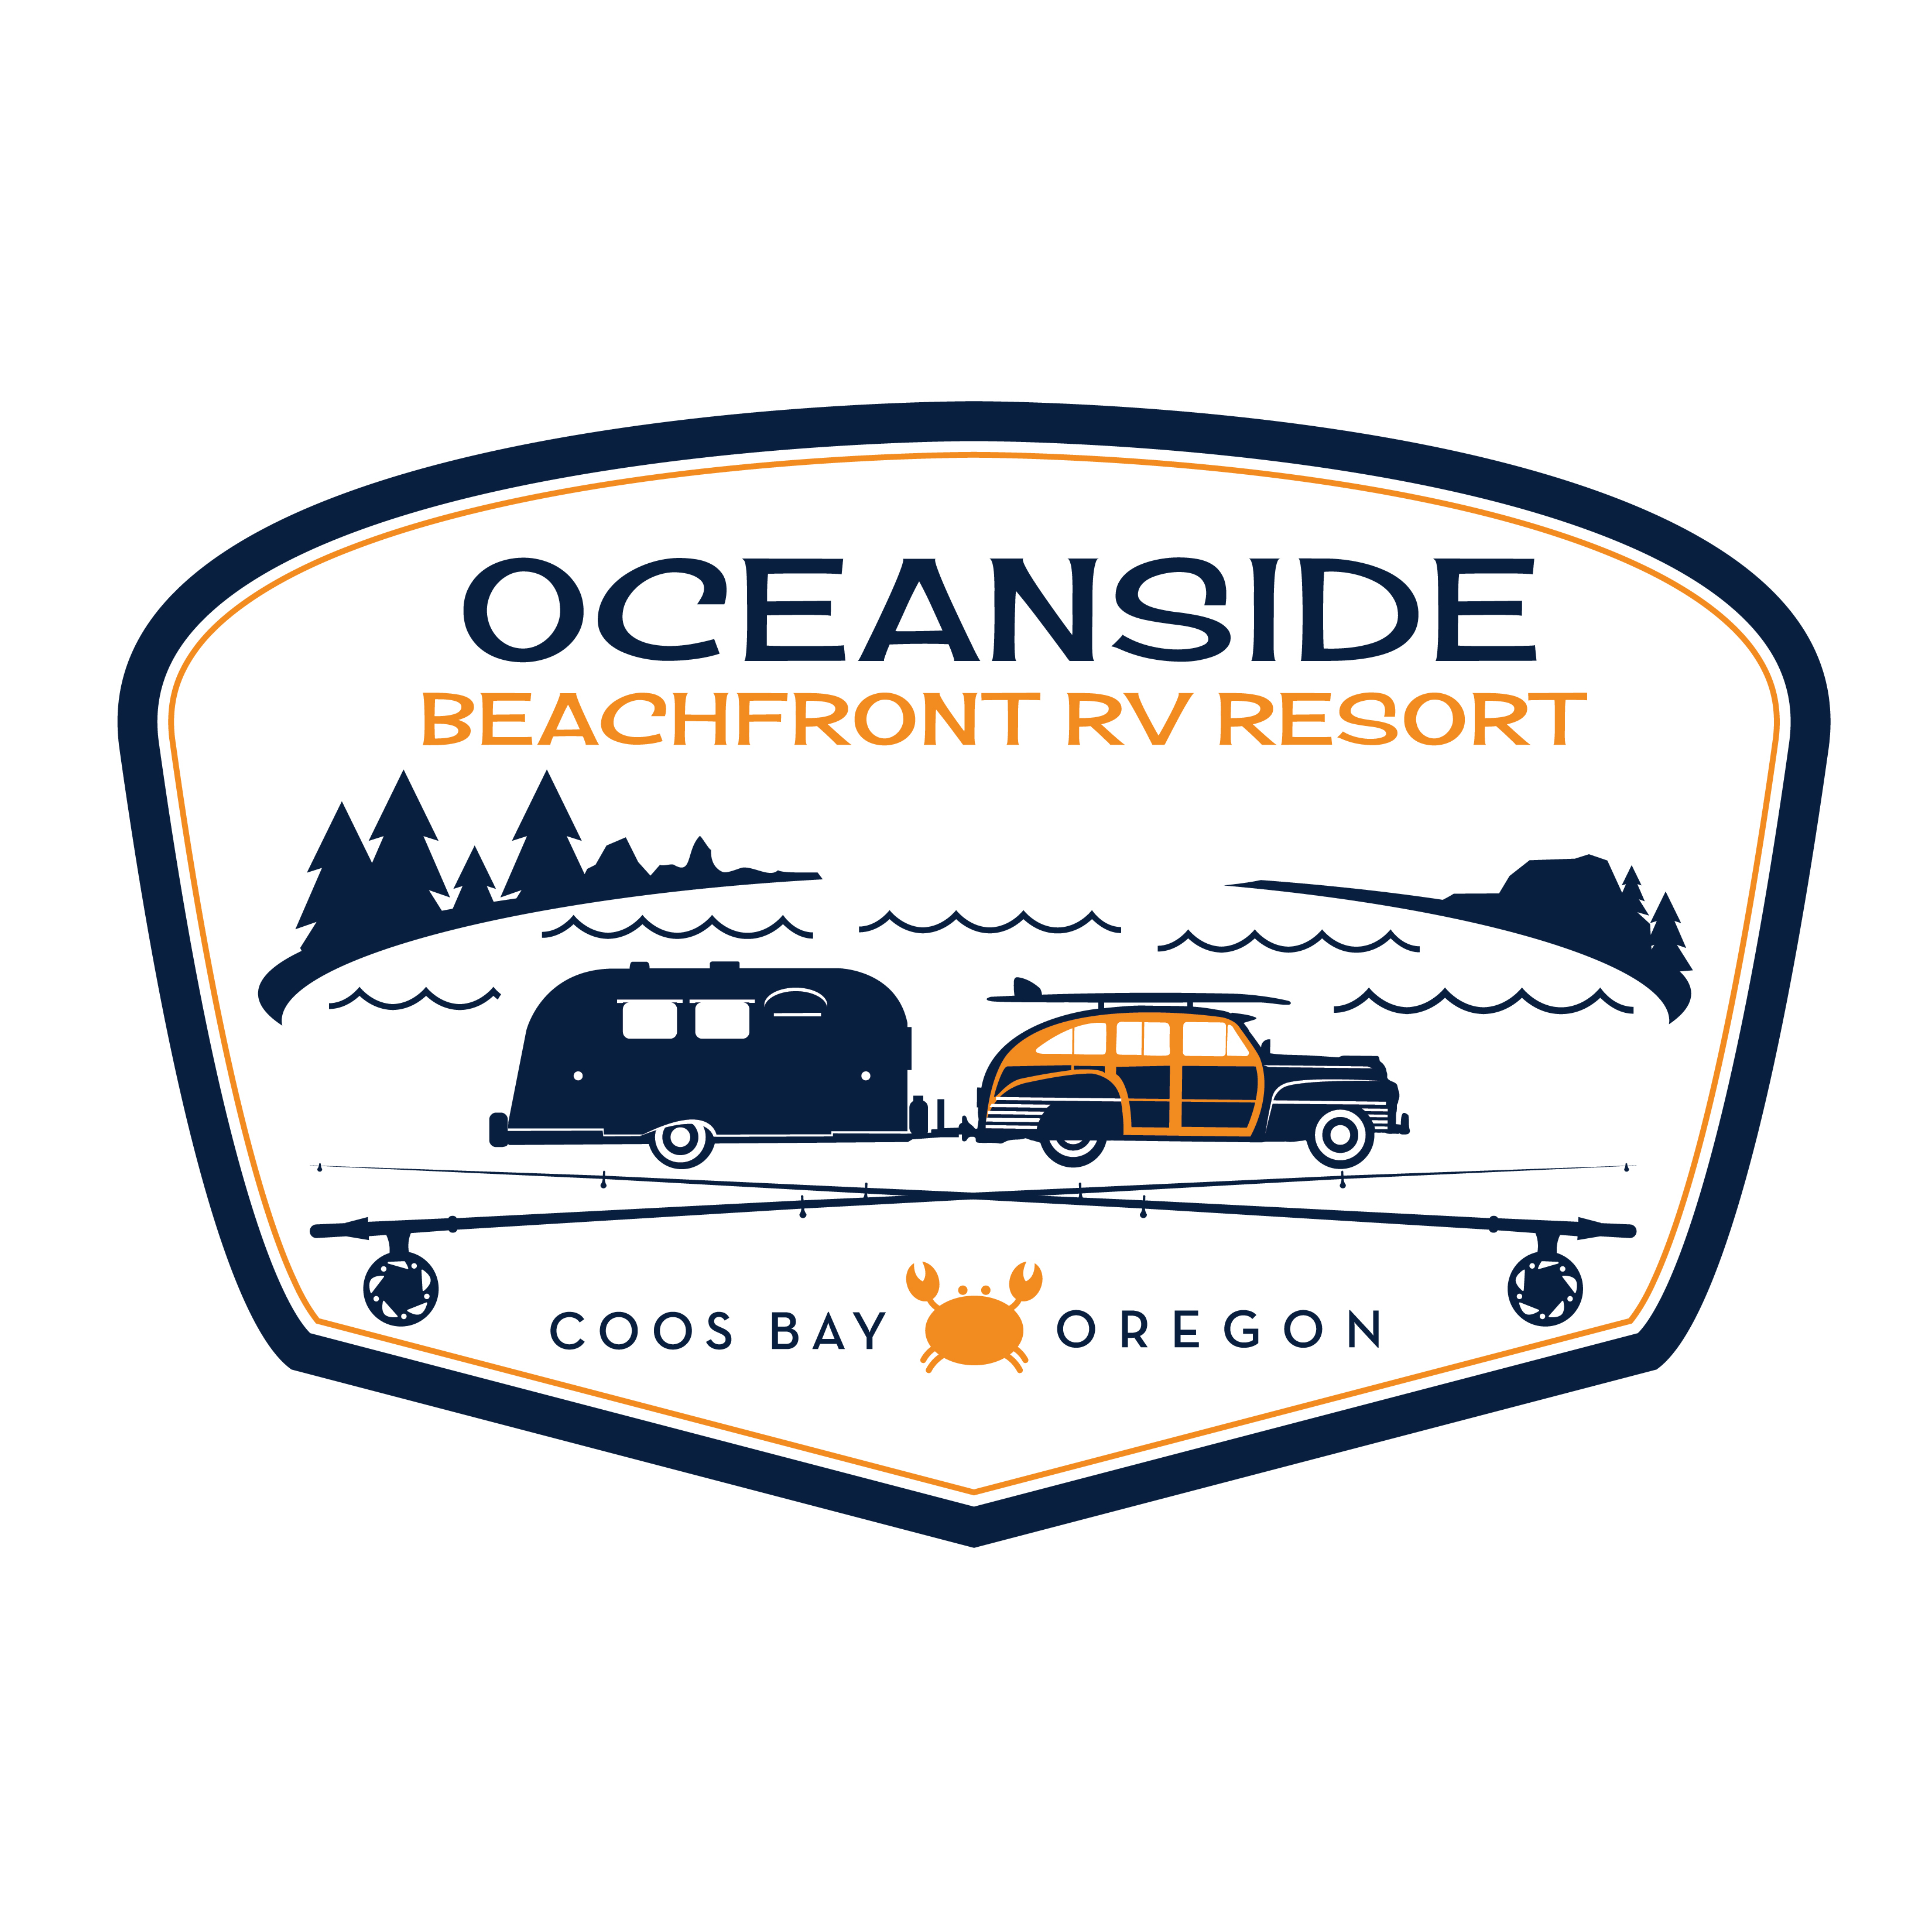 Oceanside Beachfront RV Resort - Coos Bay, OR - Camps & Campgrounds